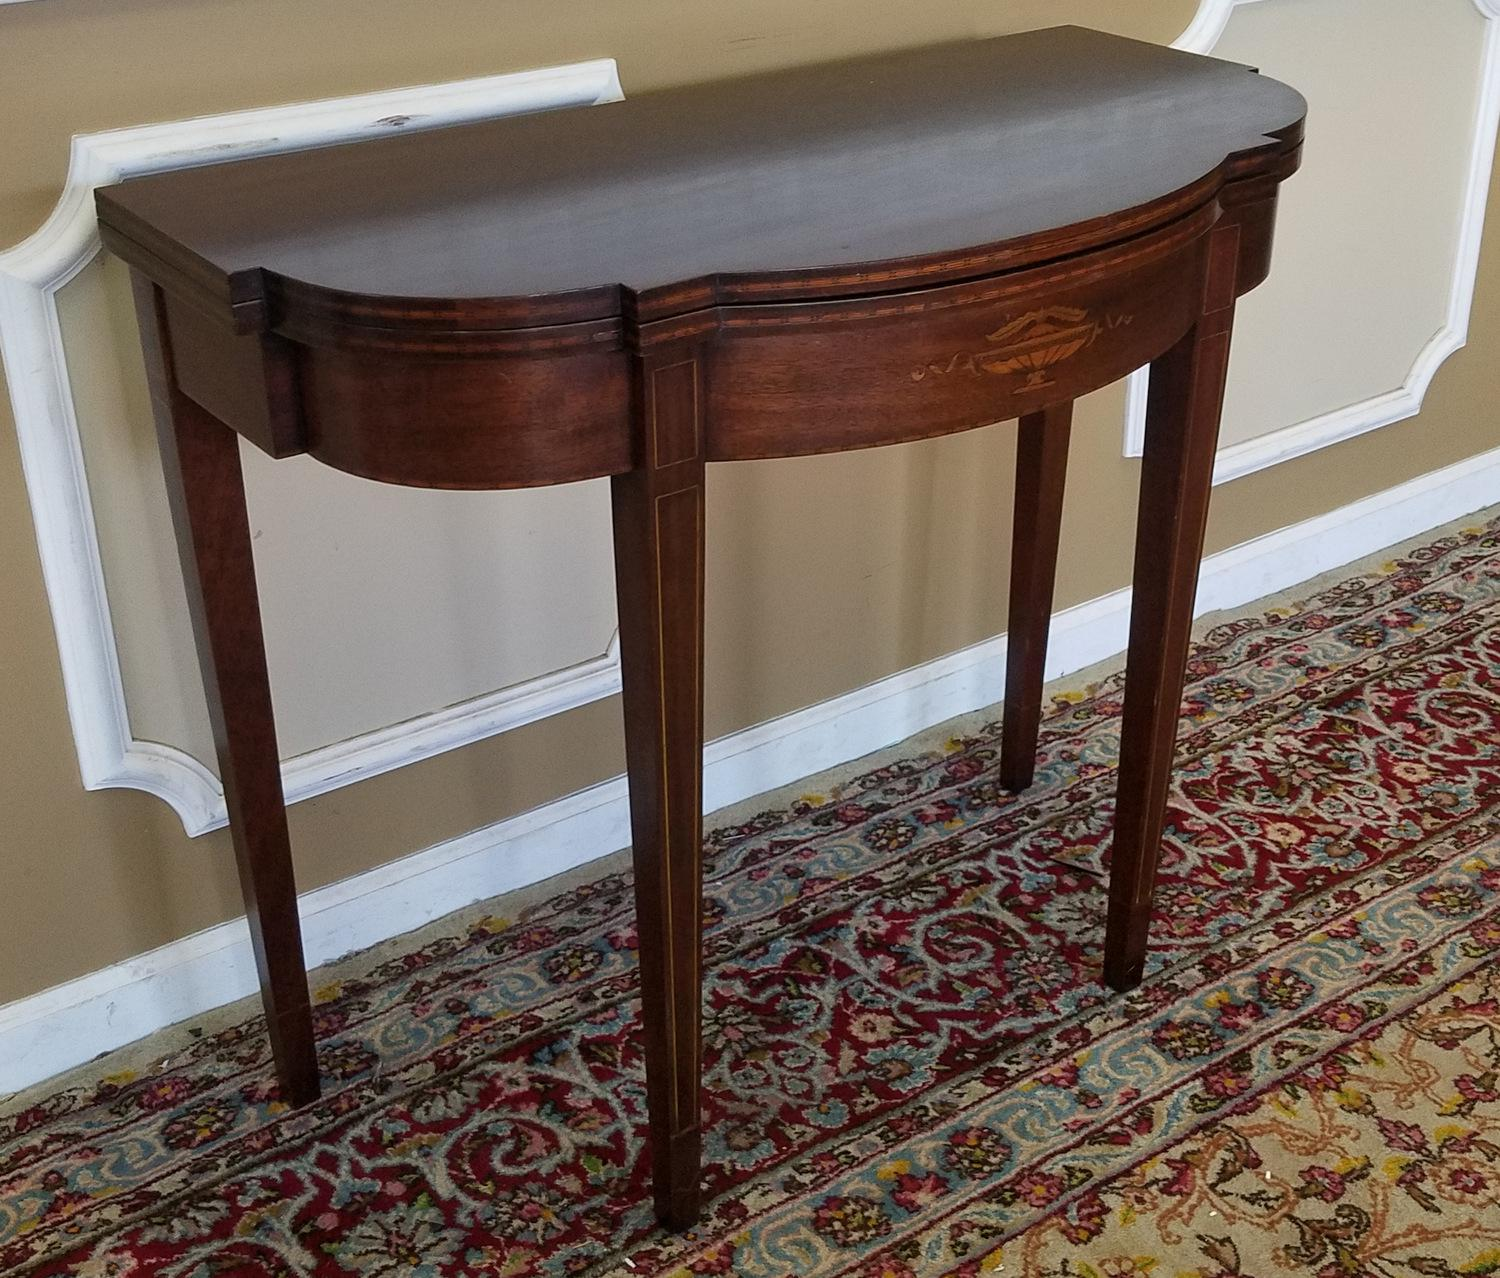 Paine Furniture Mahogany Sheraton Style Paine Furniture Flip Top Console  Hallway Table C1940s For Sale